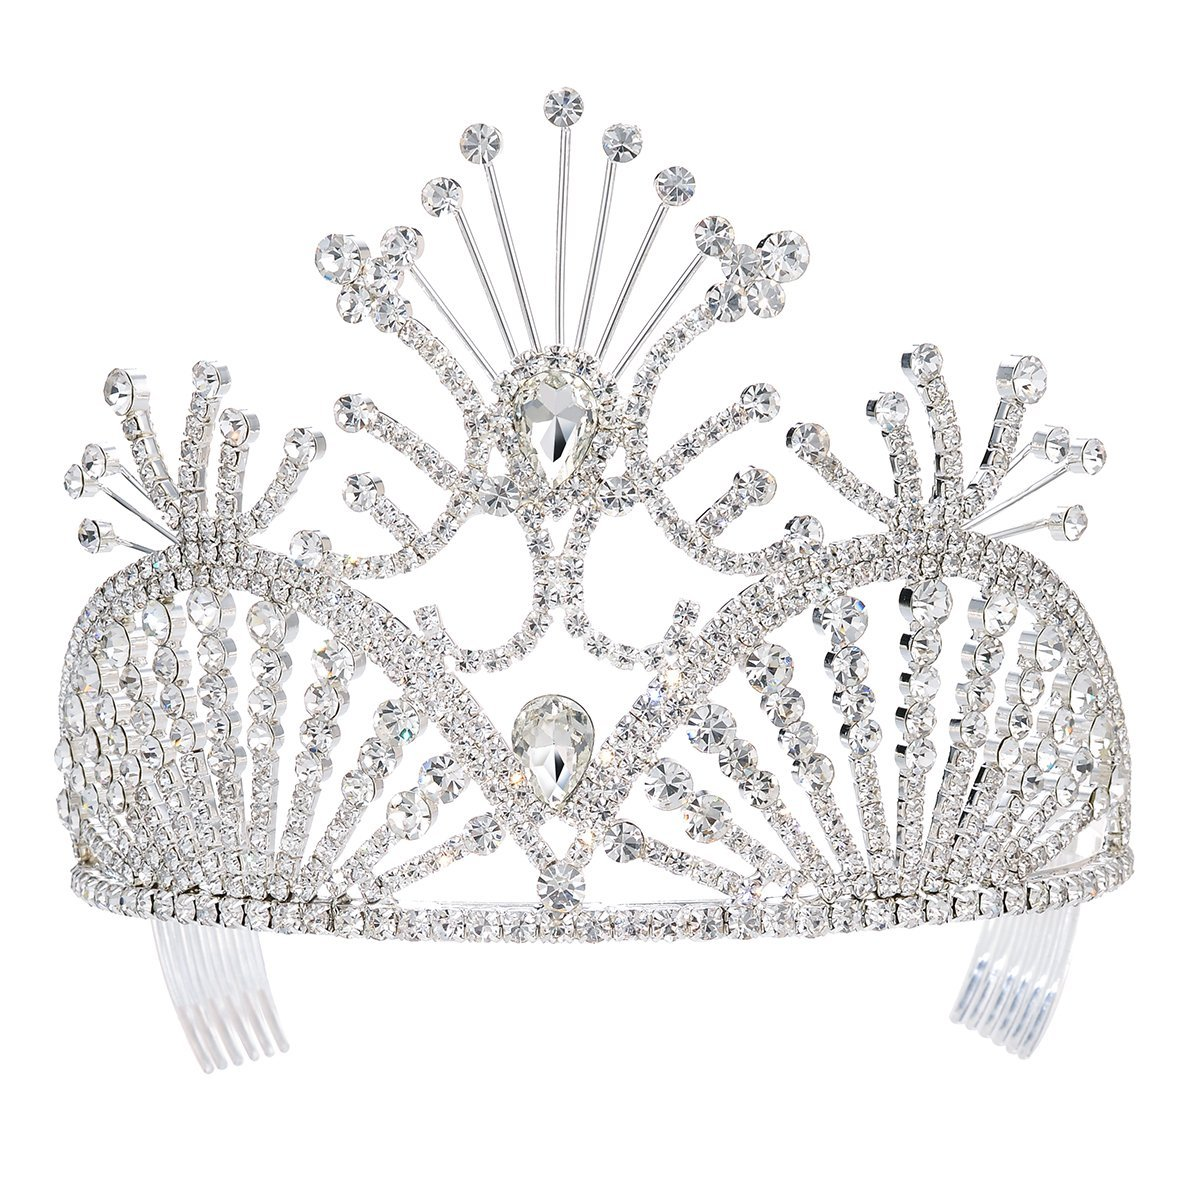 ff0ac8ffecb5 Get Quotations · DcZeRong Prom Crowns Queen Crowns Wedding Tiaras Pageant Tiaras  Bridal Crowns Women Tiara Crown